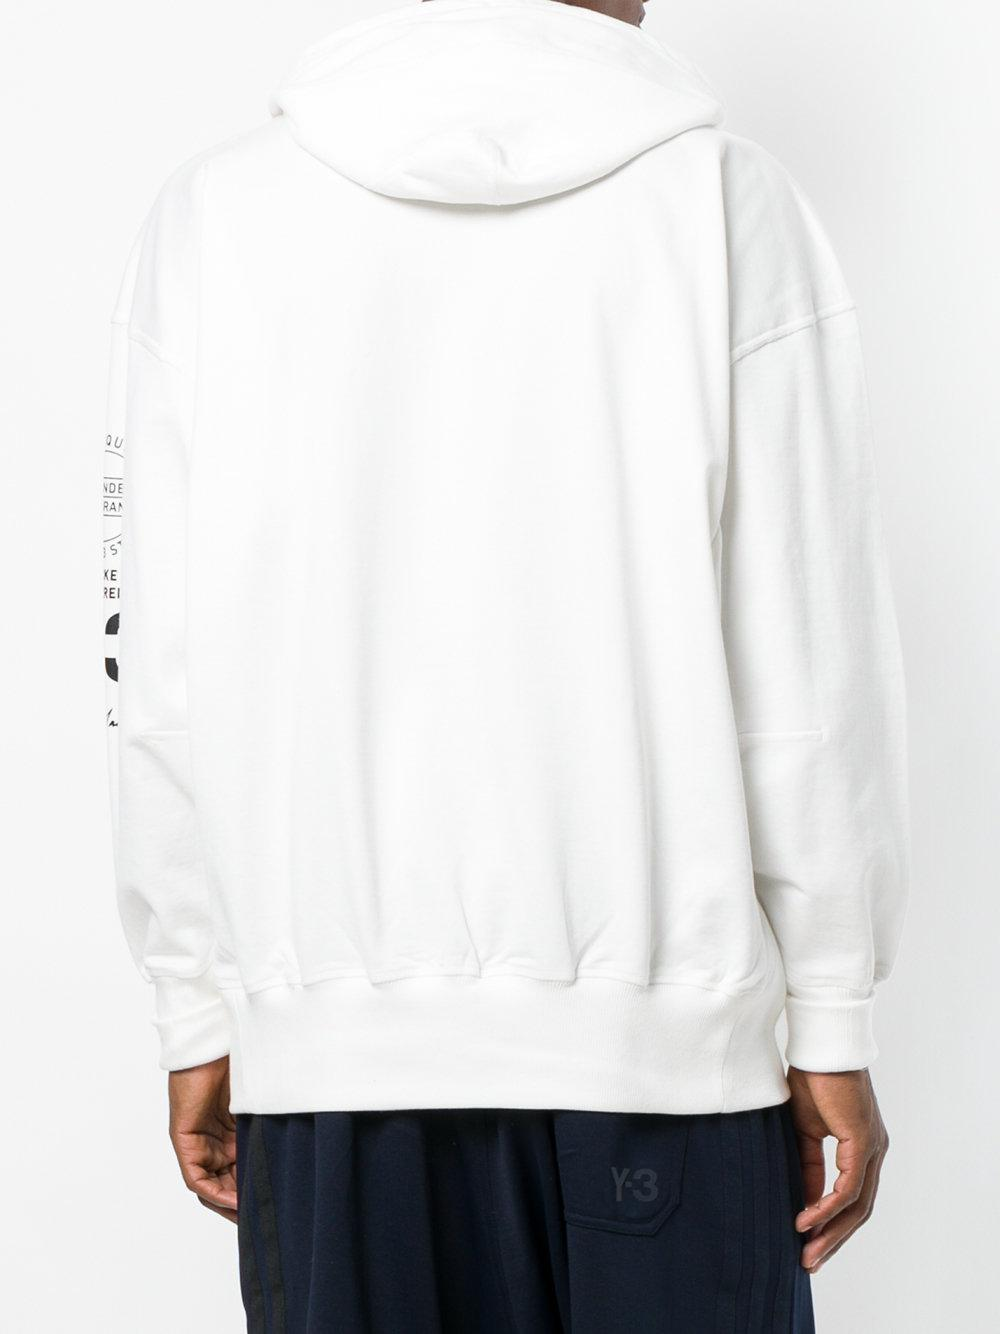 Y-3 Cotton Branded Drawstring Hoodie in White for Men